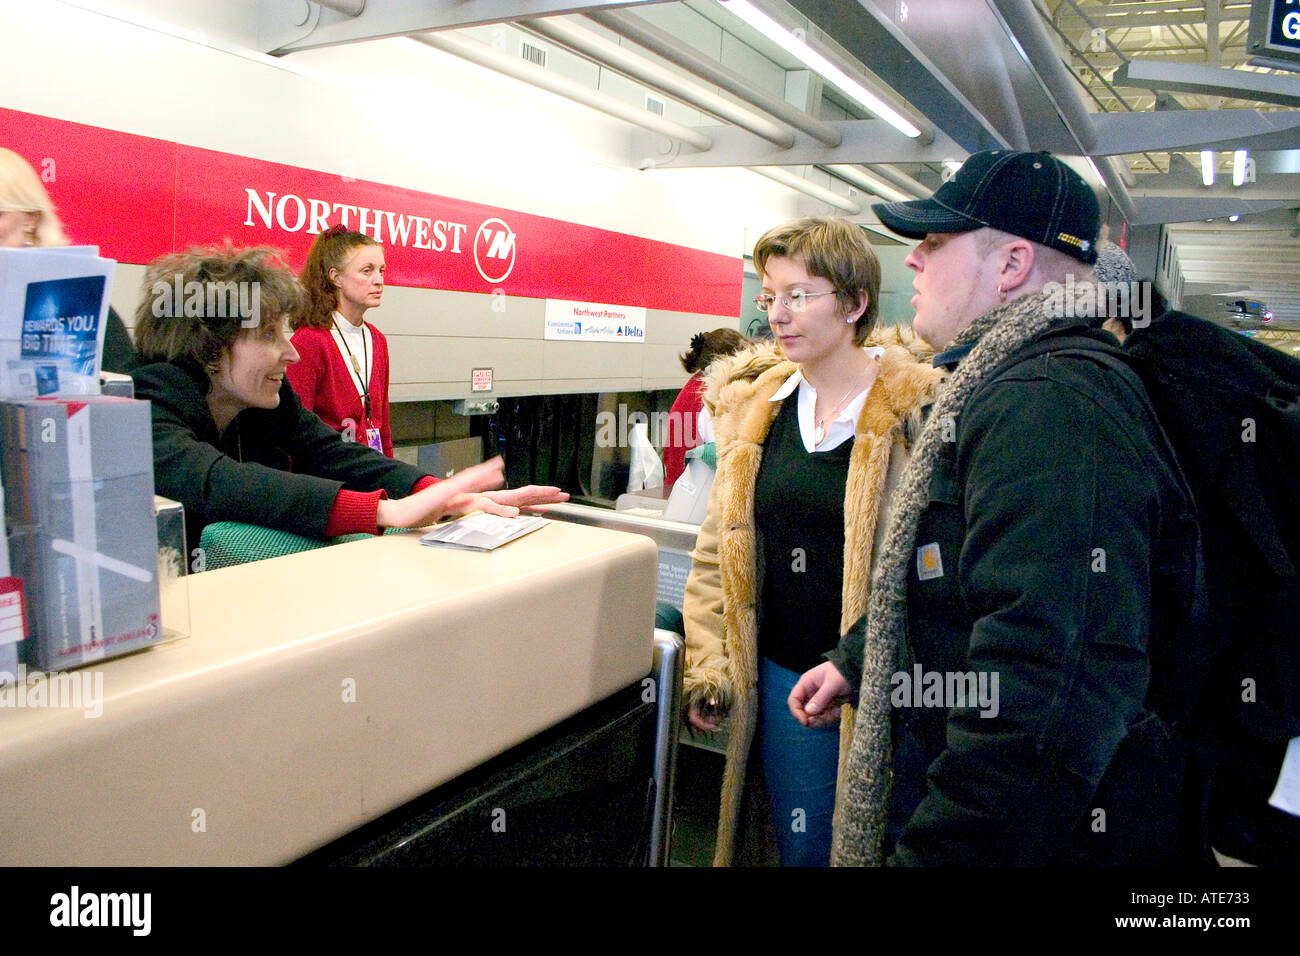 Good natured airline ticket agent trying to explain travel contingencies to weary couple age 28. Minneapolis Minnesota MN USA - Stock Image